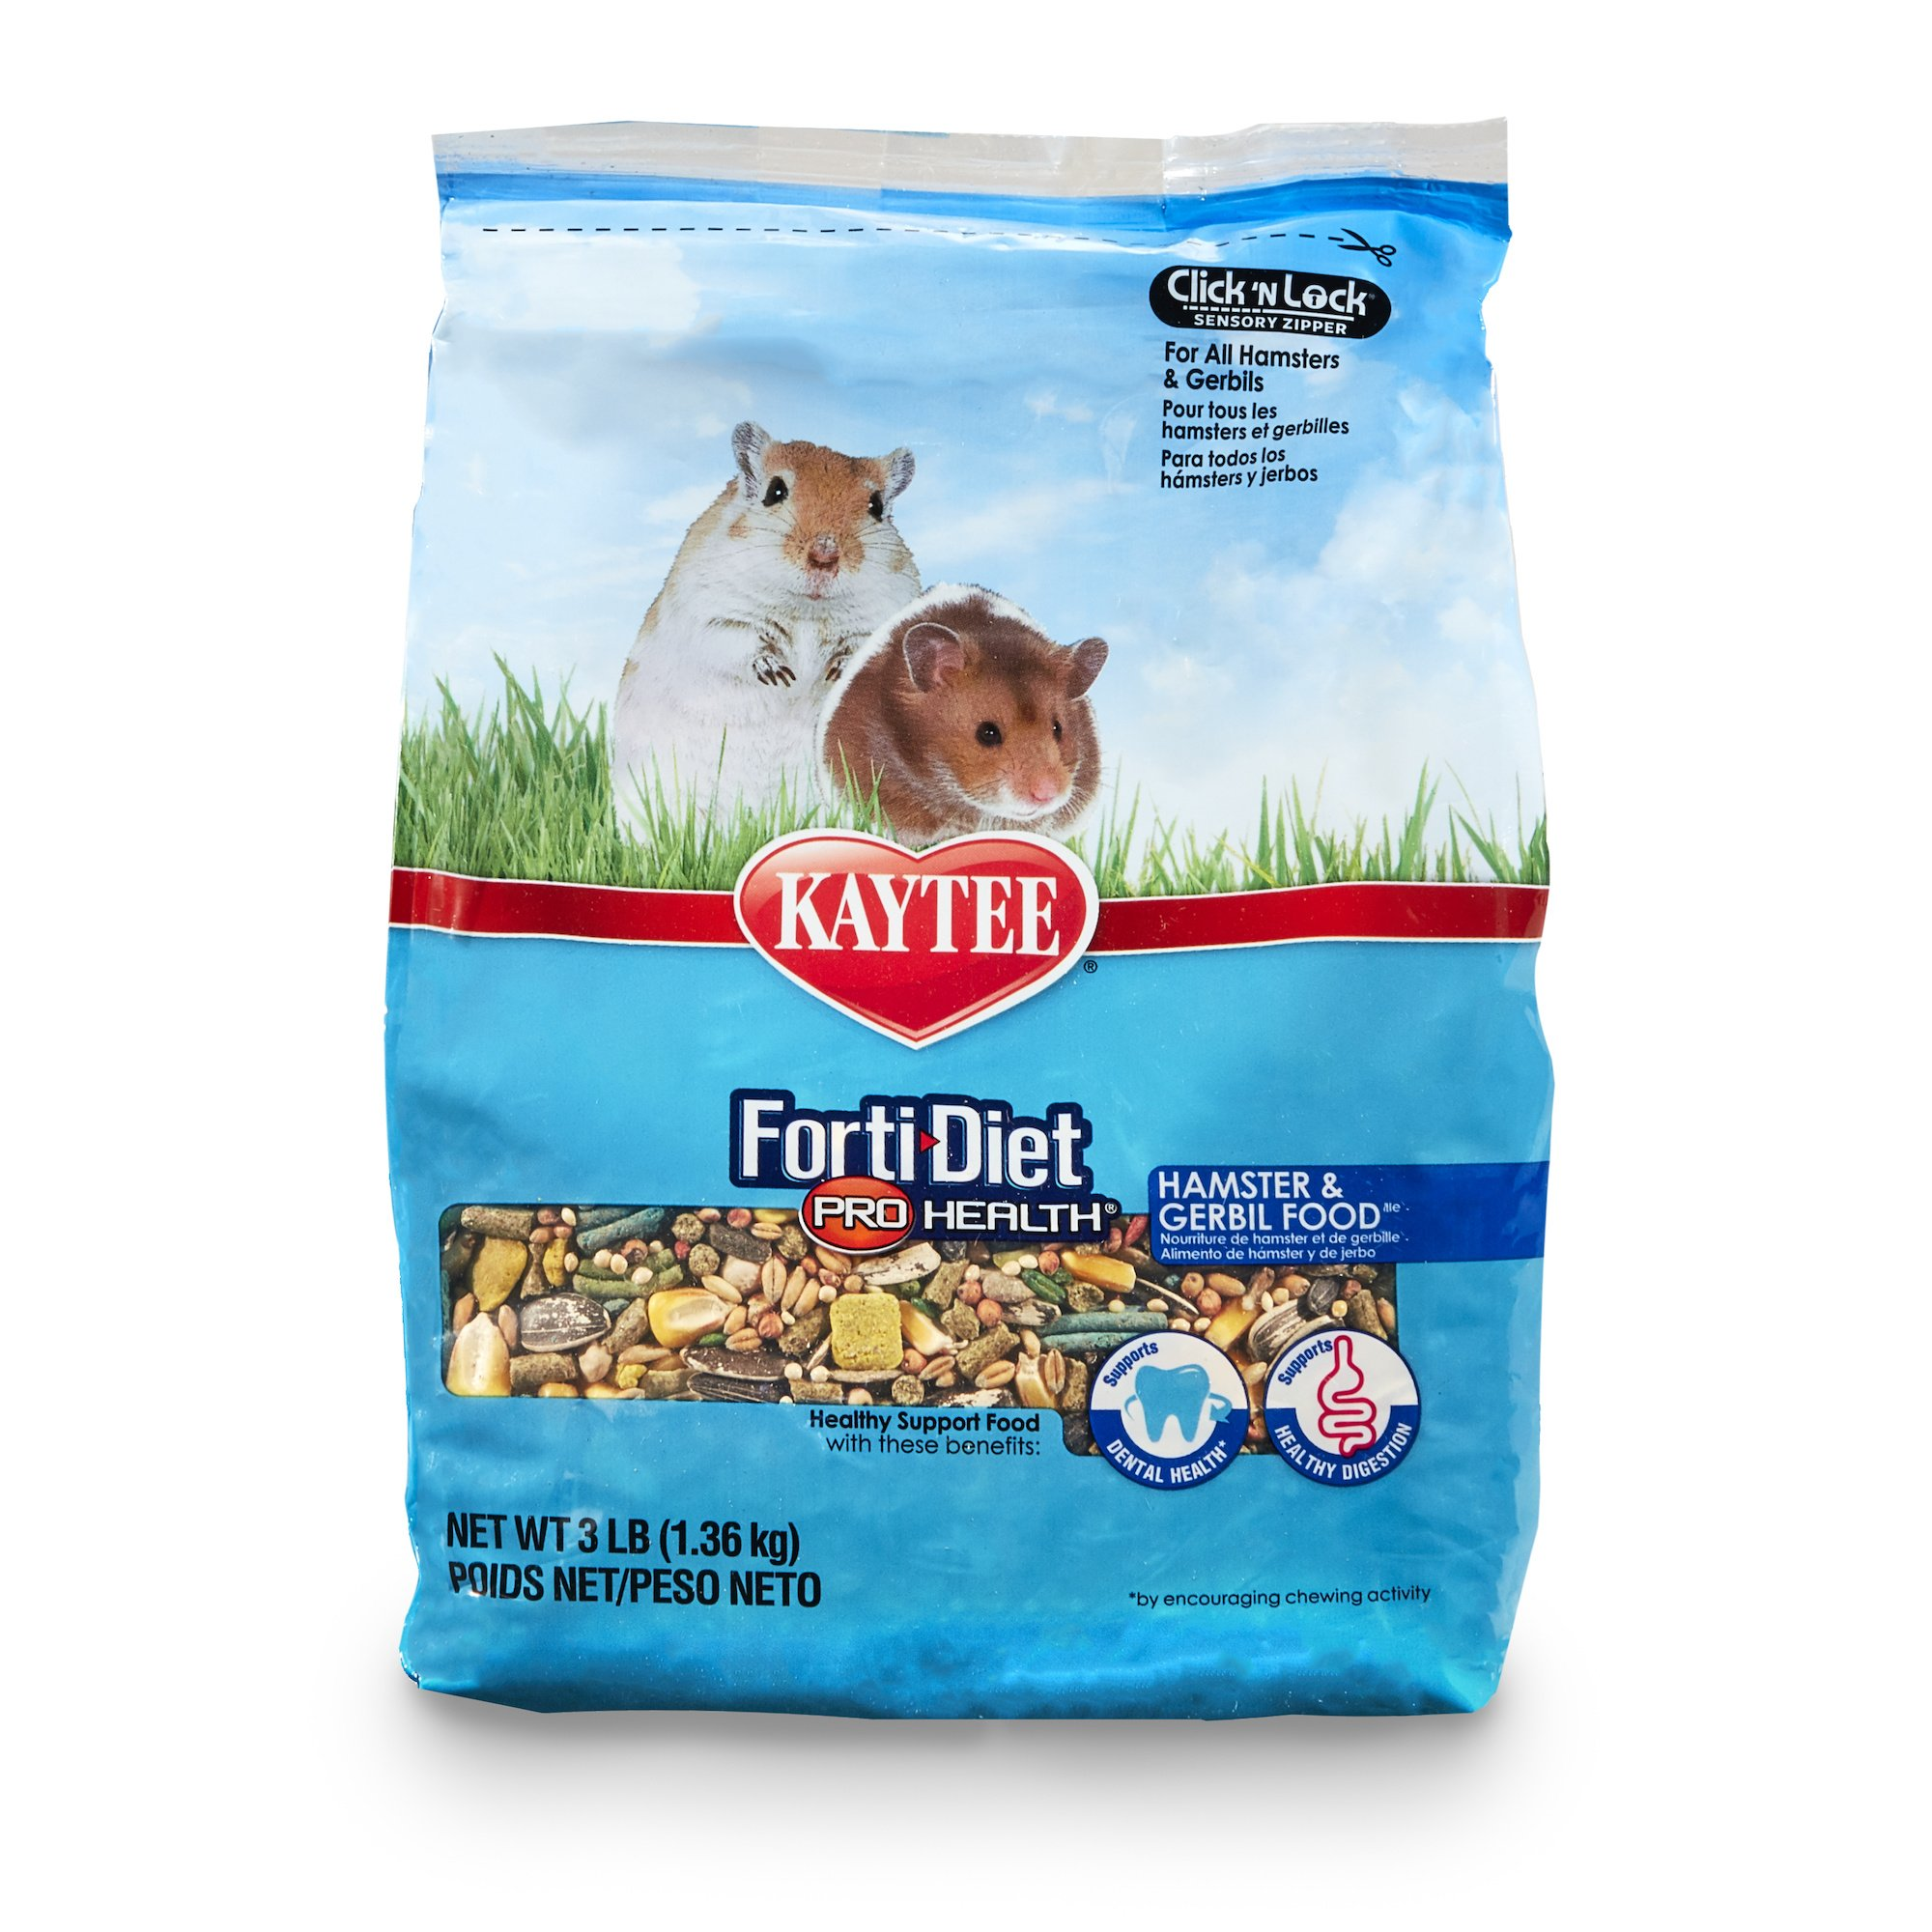 Kaytee Forti Diet Pro Health Hamster Food, 3-Pound by Kaytee (Image #1)